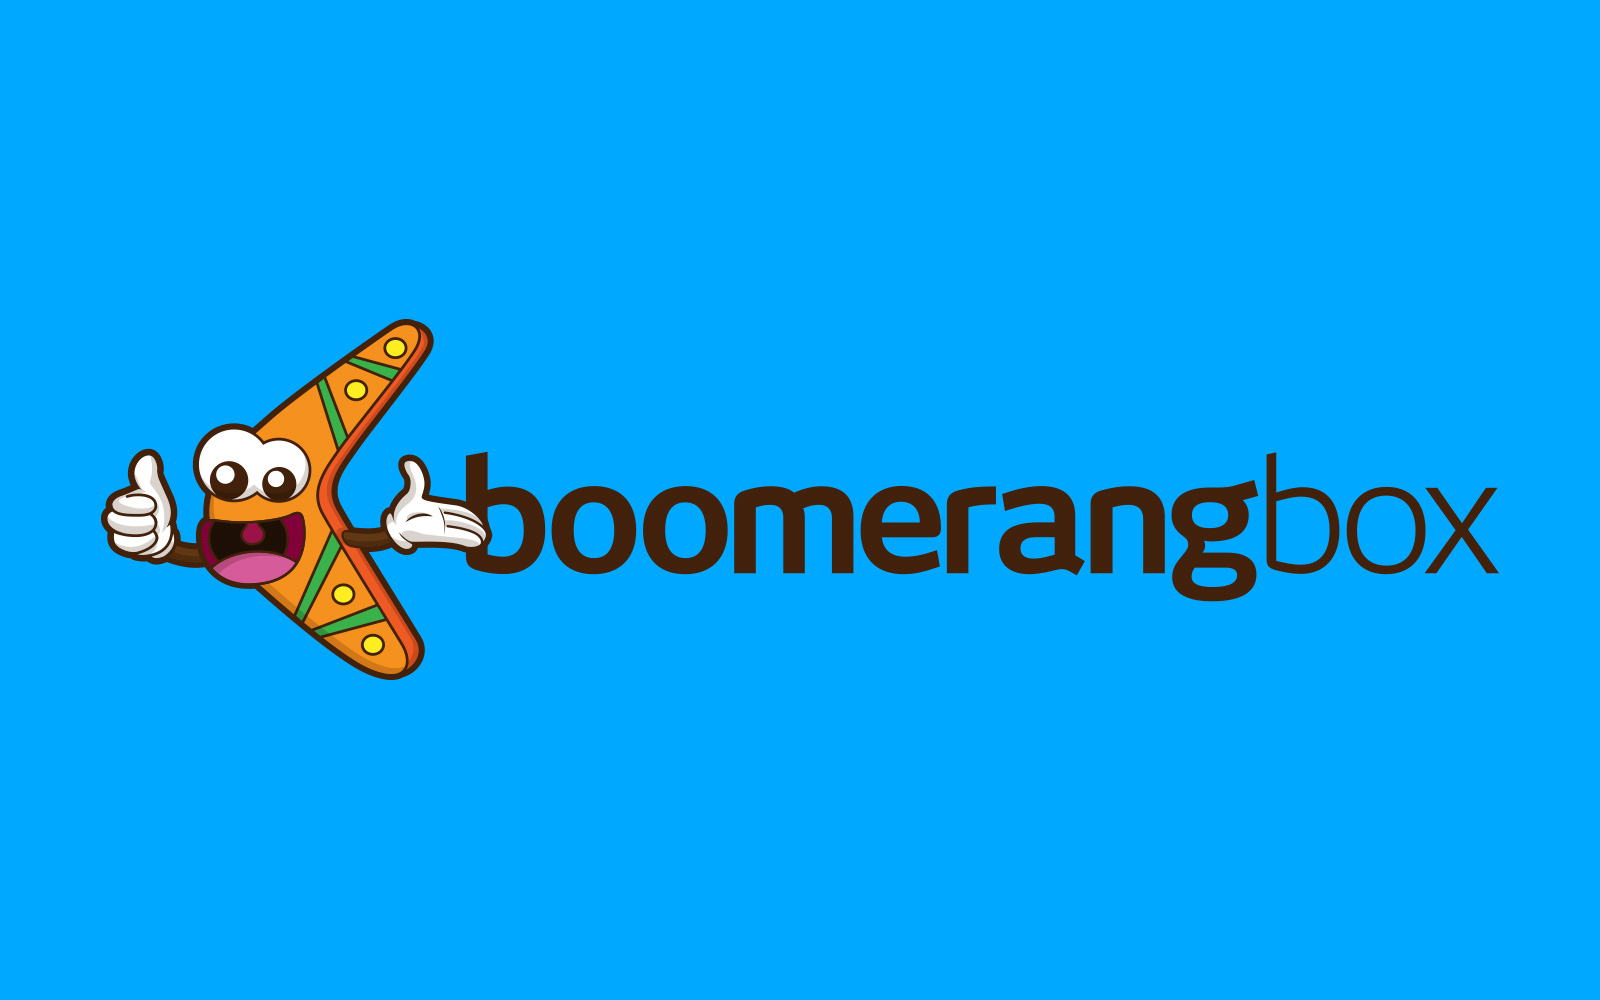 Taffy for Boomerang Box